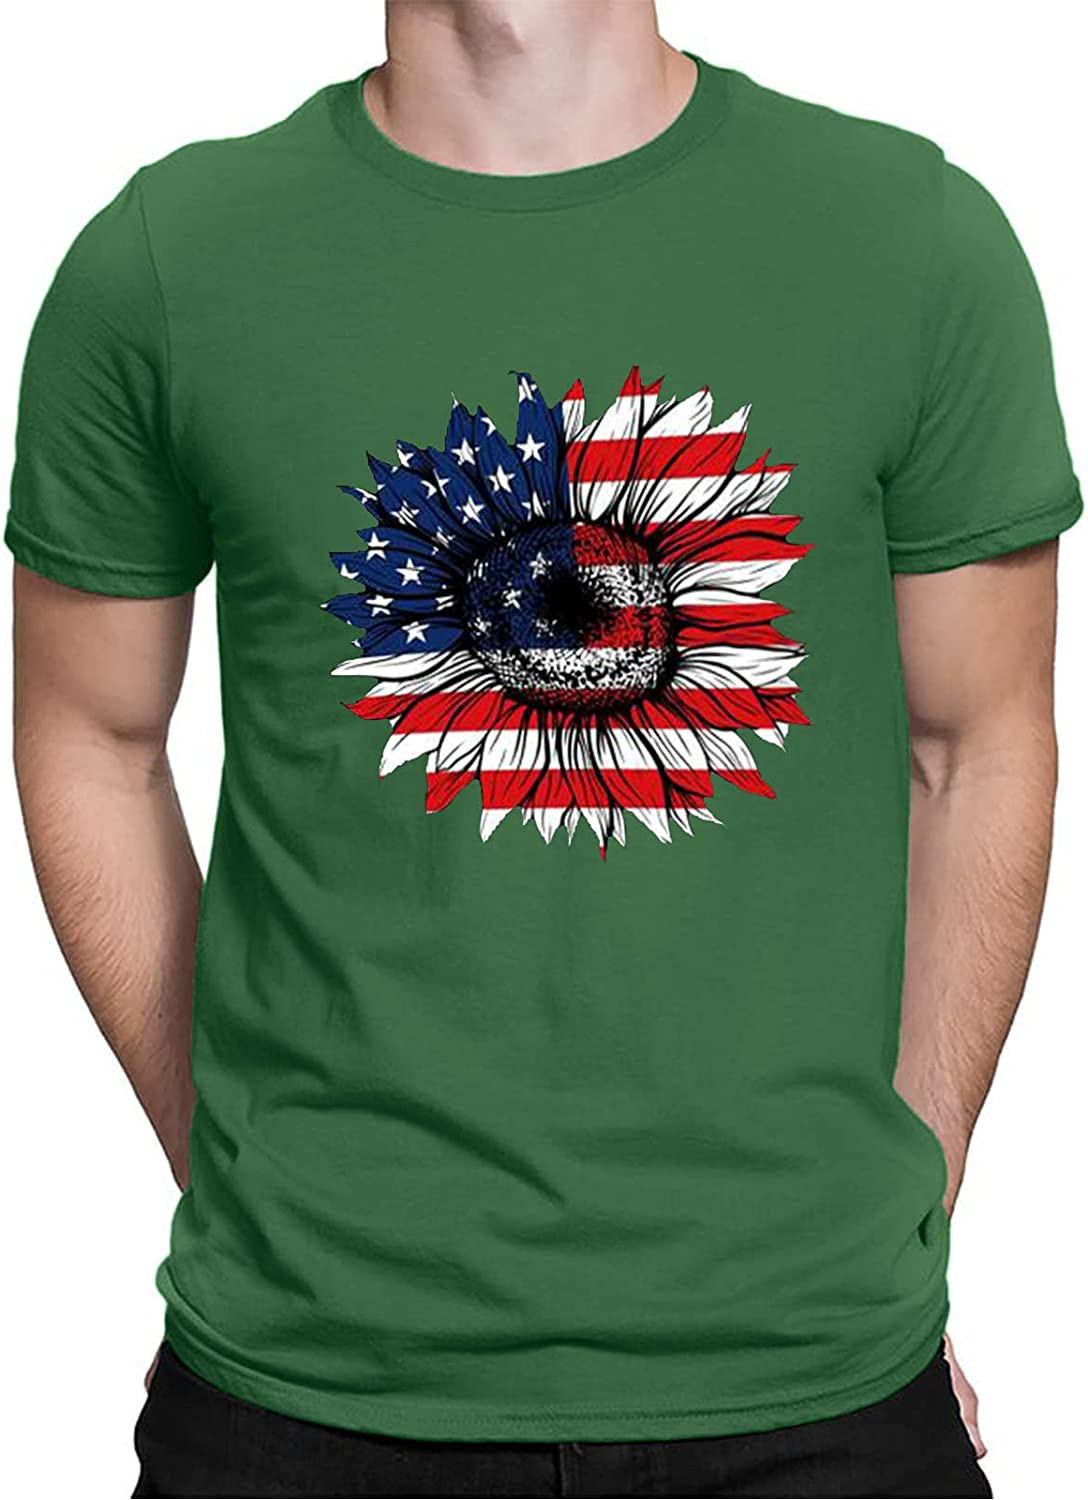 JSPOYOU T-Shirt for Men's Summer Printing Digital Bombing free shipping Independenc 3D Super beauty product restock quality top!